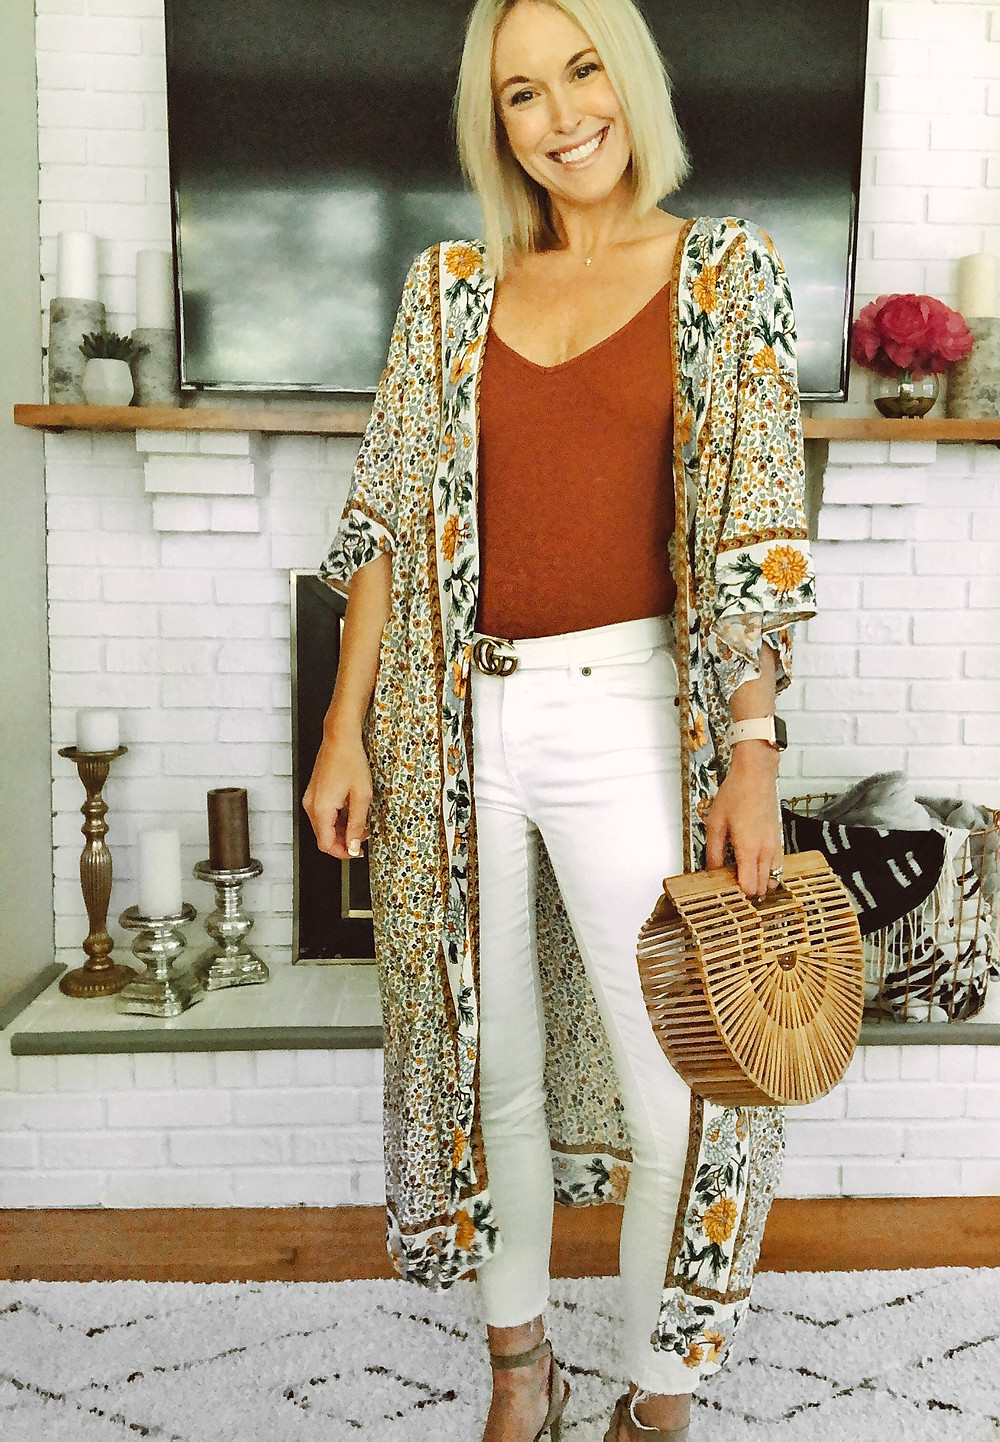 Nordstrom BP bodysuit, summer outfit, womens weekend style, floral kimono duster, LOFT white jeans, wooden ark bag, Amazon fashion finds, fashion blogger, summer trends